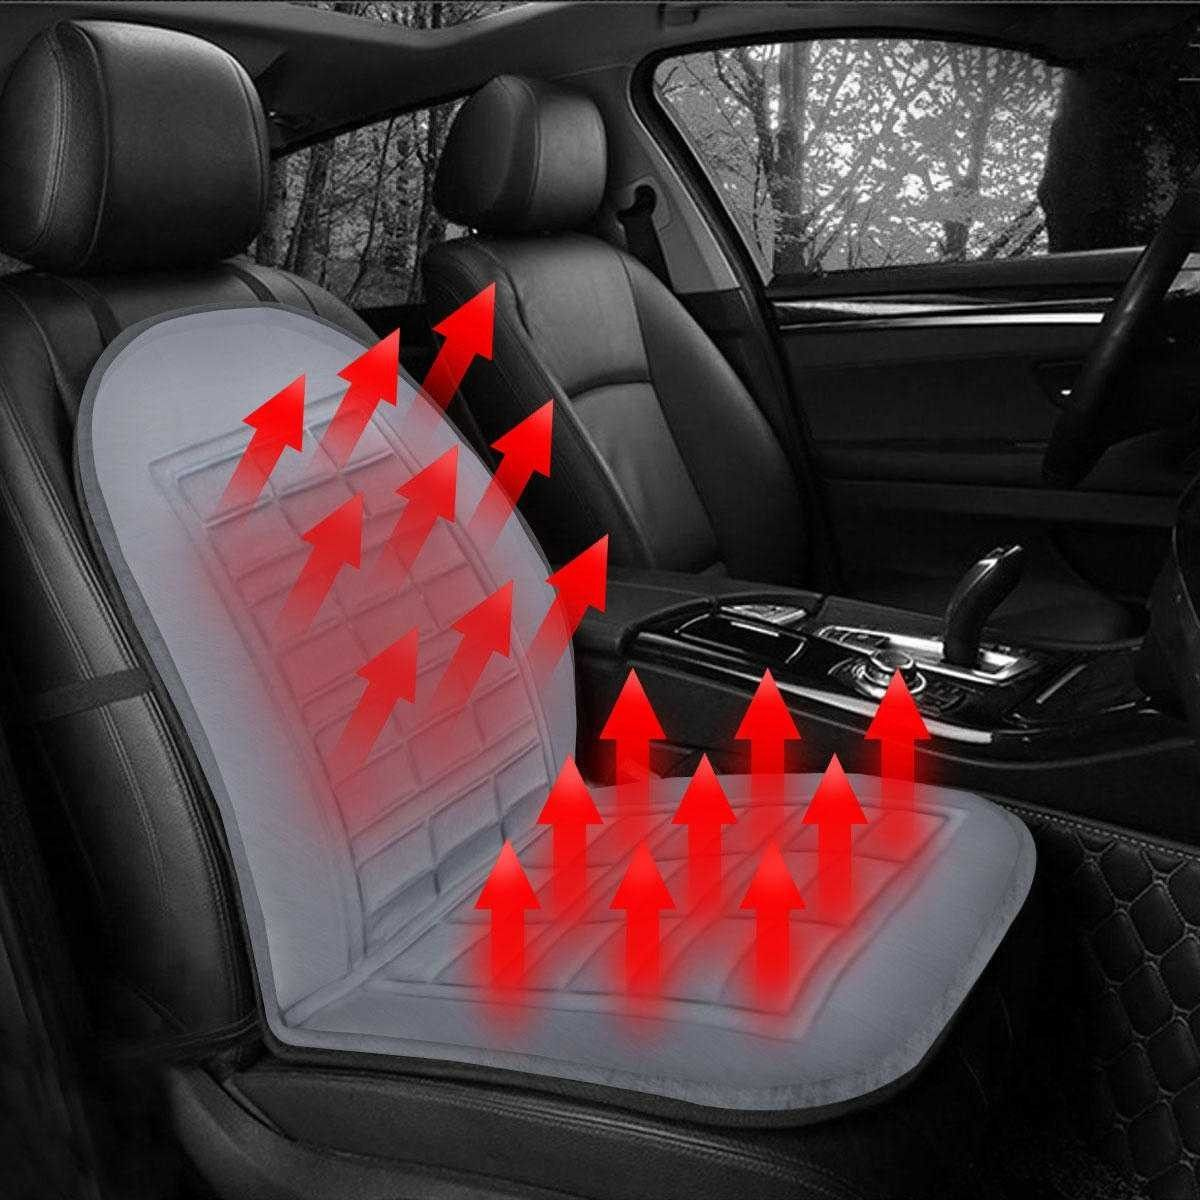 12v Car Front Seat Heated Cushion Winter Warmer Cover Protector